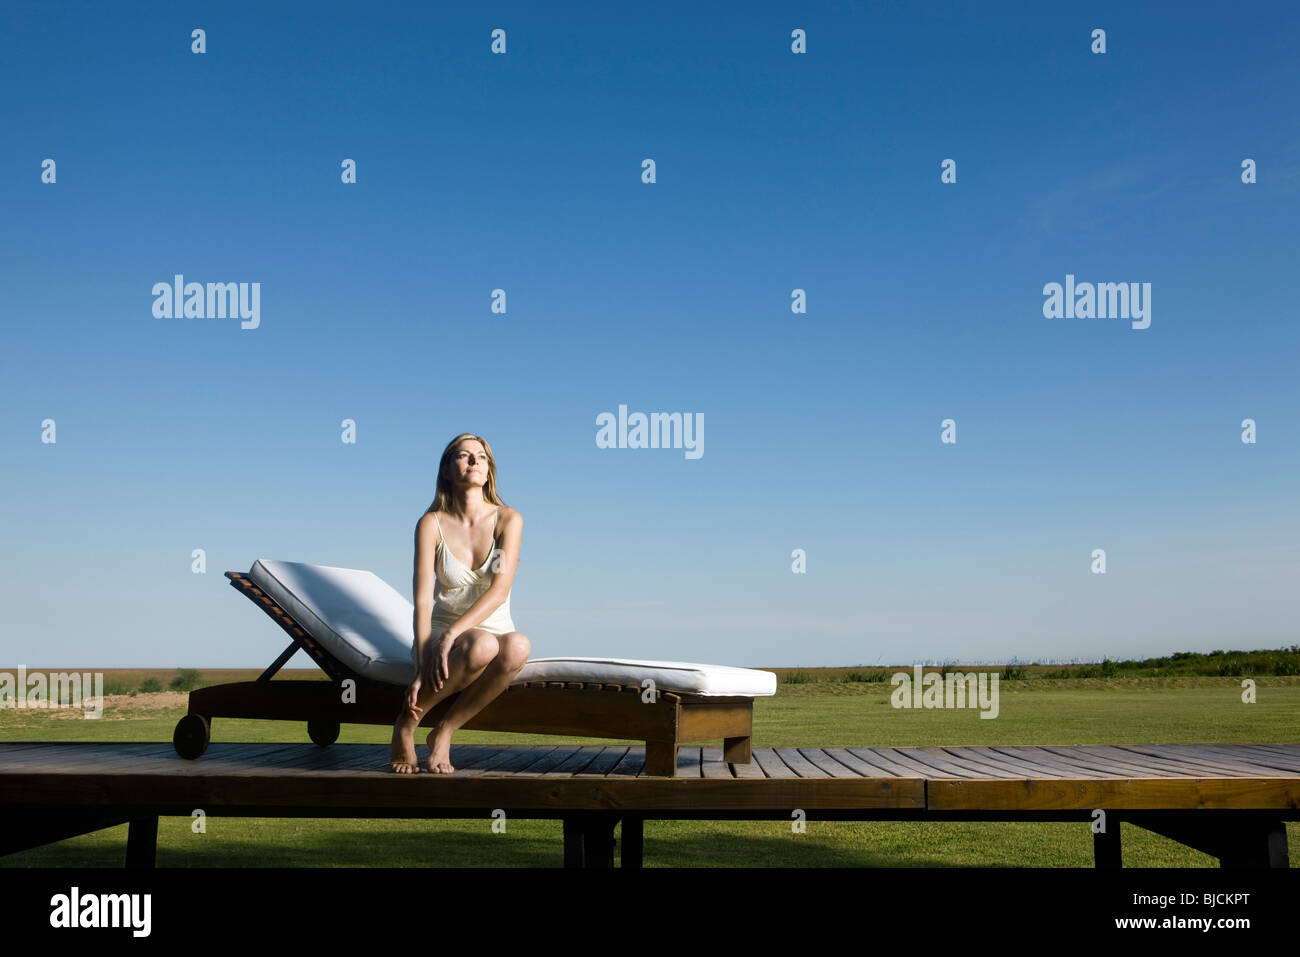 Woman sitting on lounge chair outdoors, looking up dreamily - Stock Image